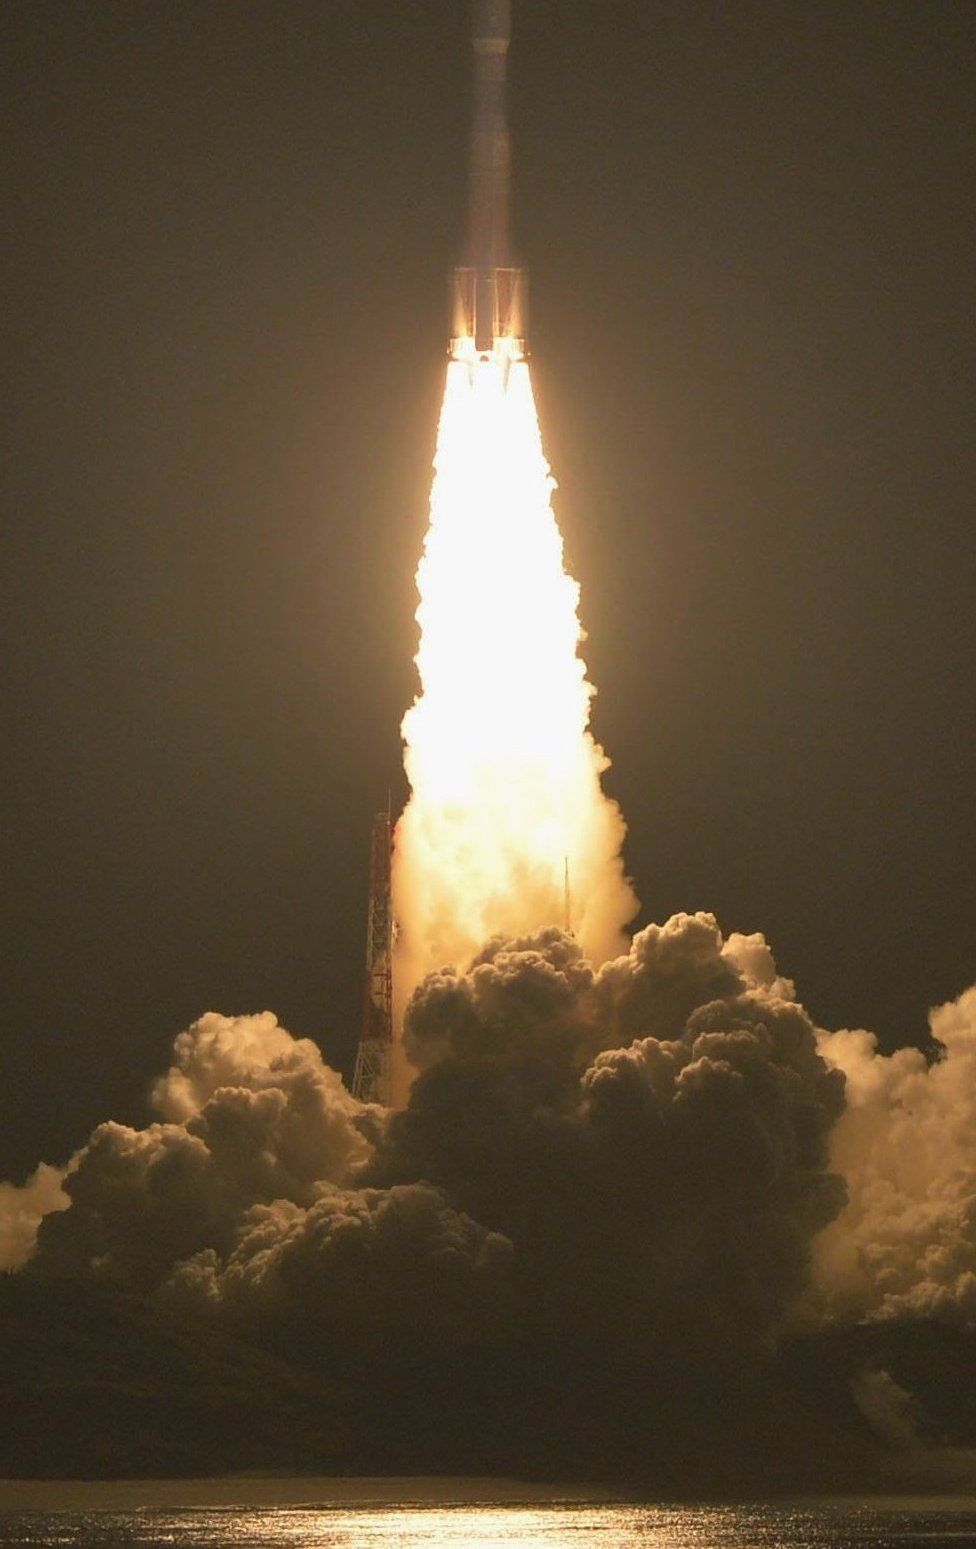 Japan's H-IIB rocket with a capsule called Kounotori, or Stork, goes up shortly after lift-off at the Tanegashima Space Center in Tanegashima, southern Japan, Friday evening, 9 December 2016.